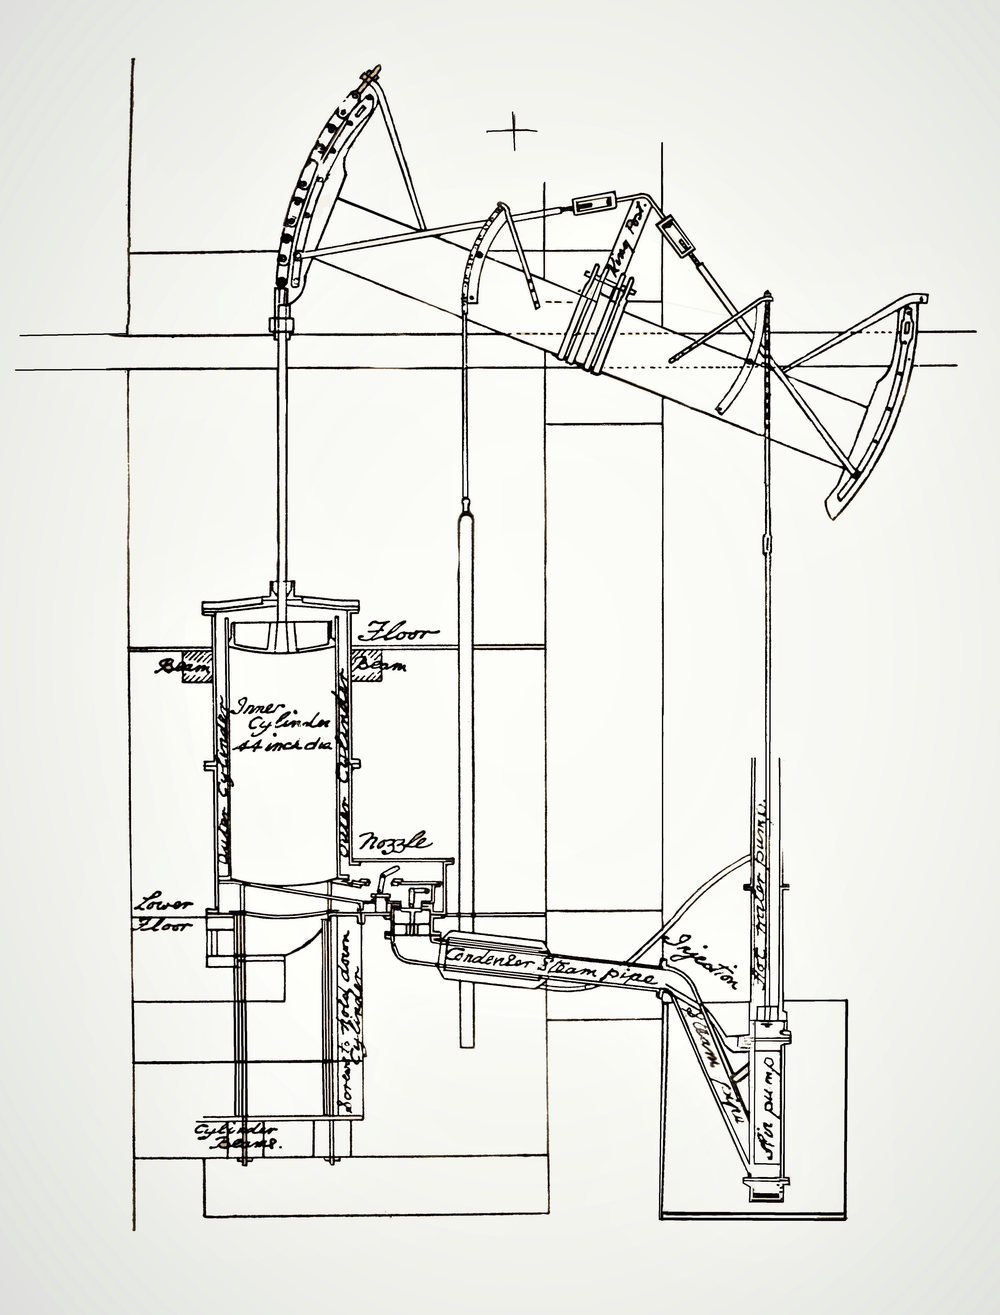 Drawing of an early Watt beam engine